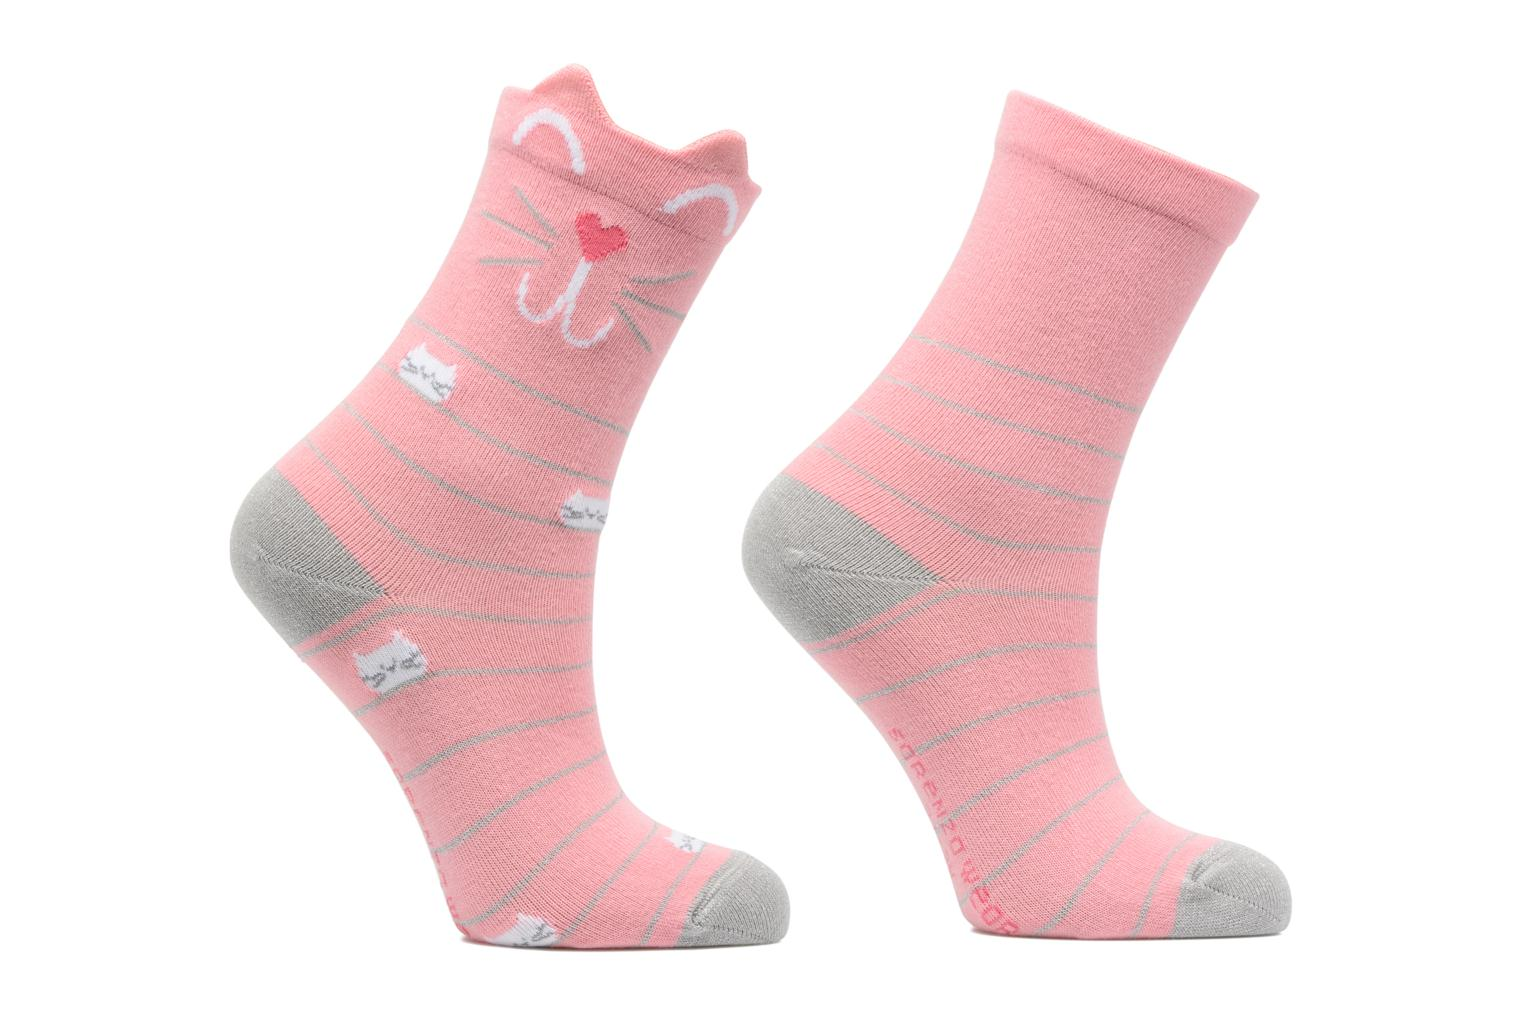 Chaussettes Fille Chat Pack de 2 coton Rose / lurex